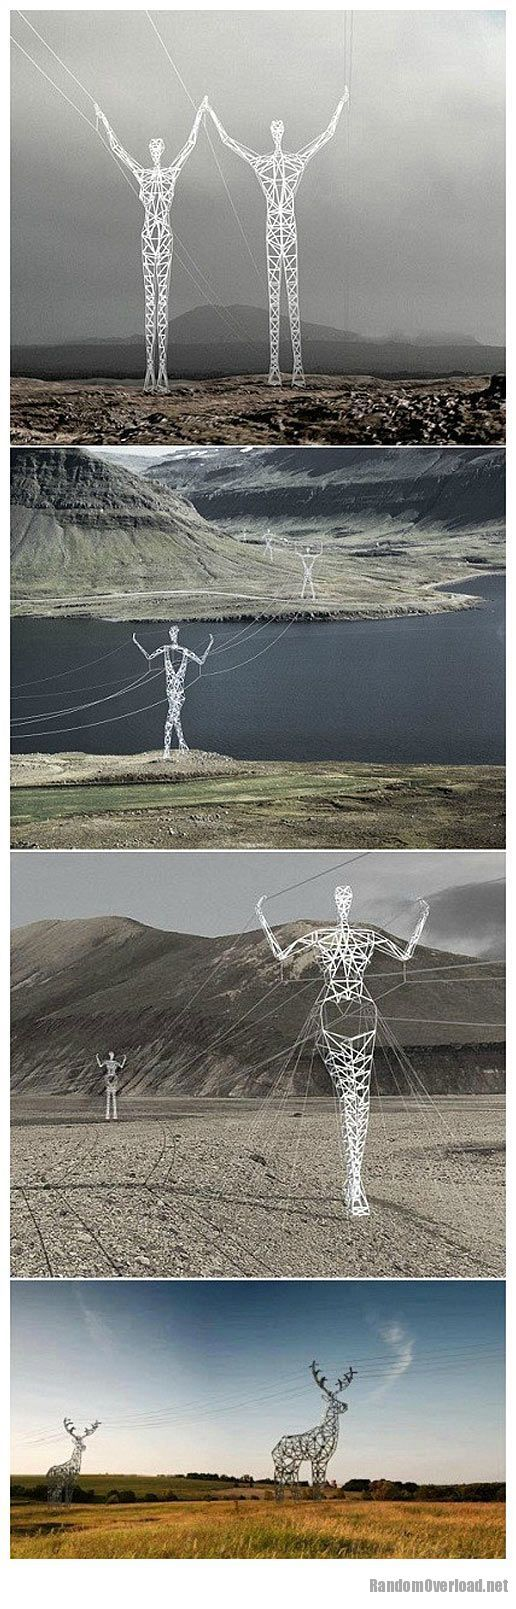 Iceland electric poles - RandomOverload